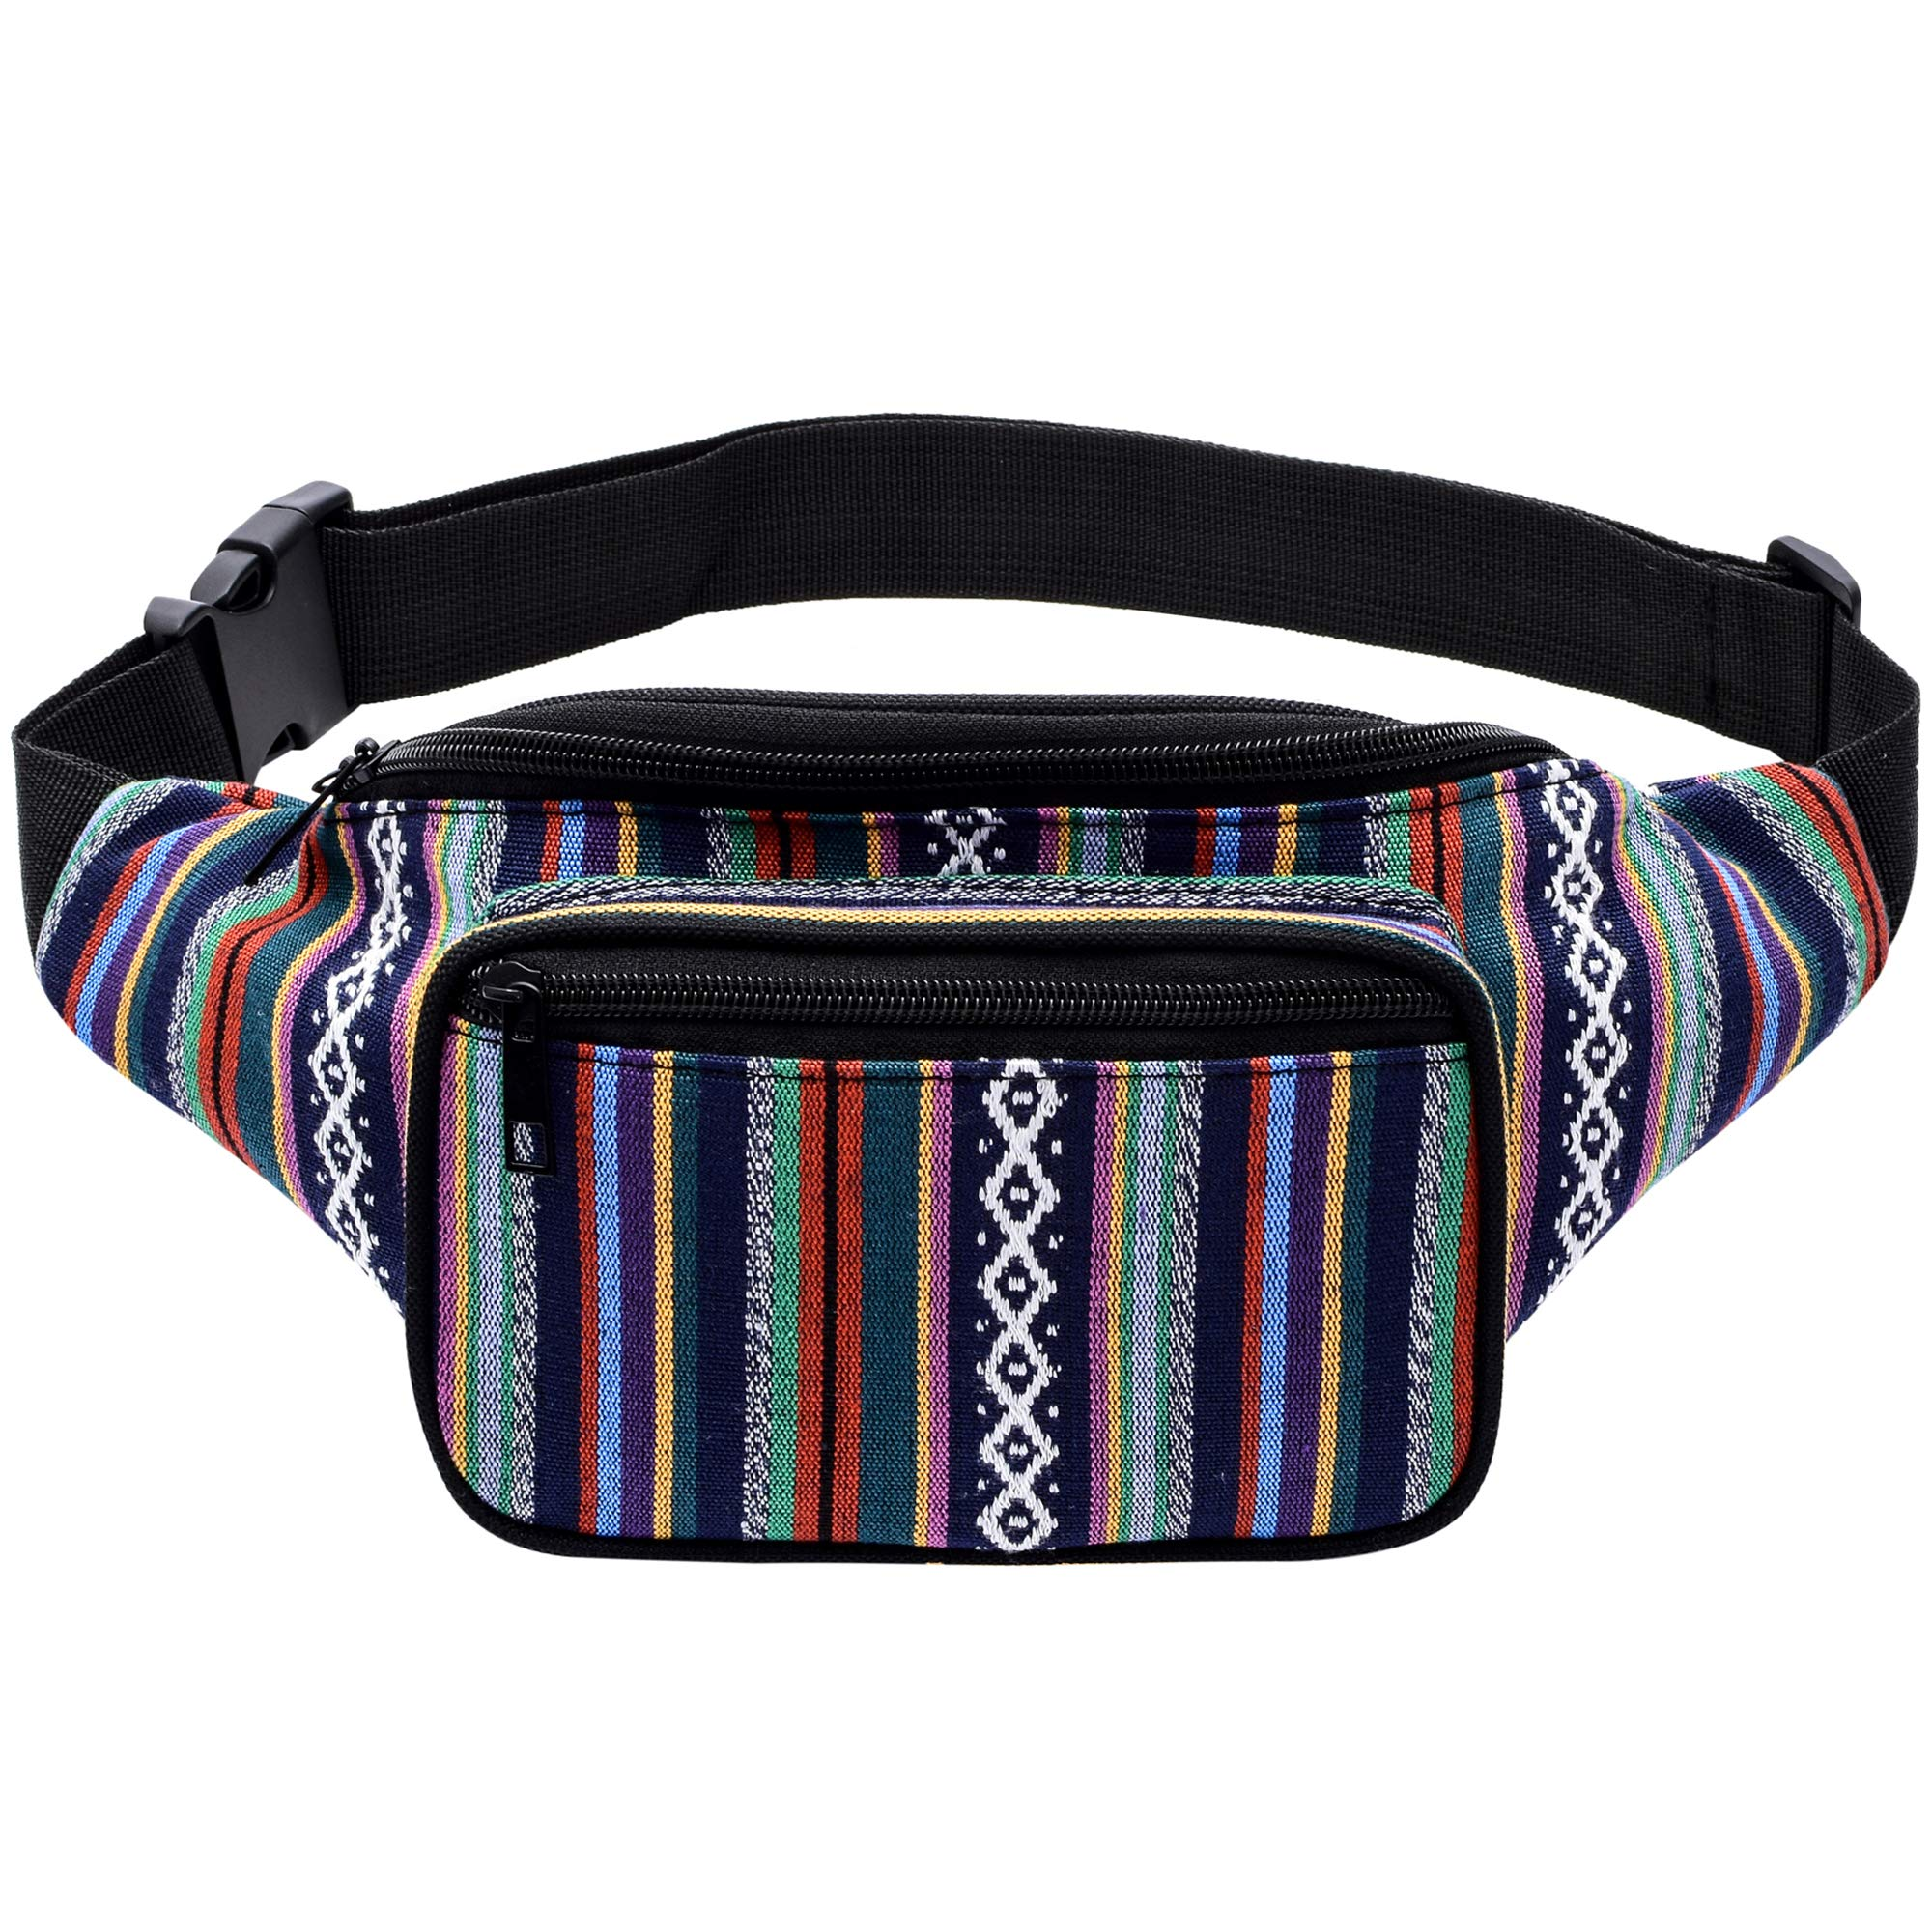 Kayhoma Boho Fanny Pack Stripe Festival Rave Bum Bags Travel Hiking Waist Belt Purse